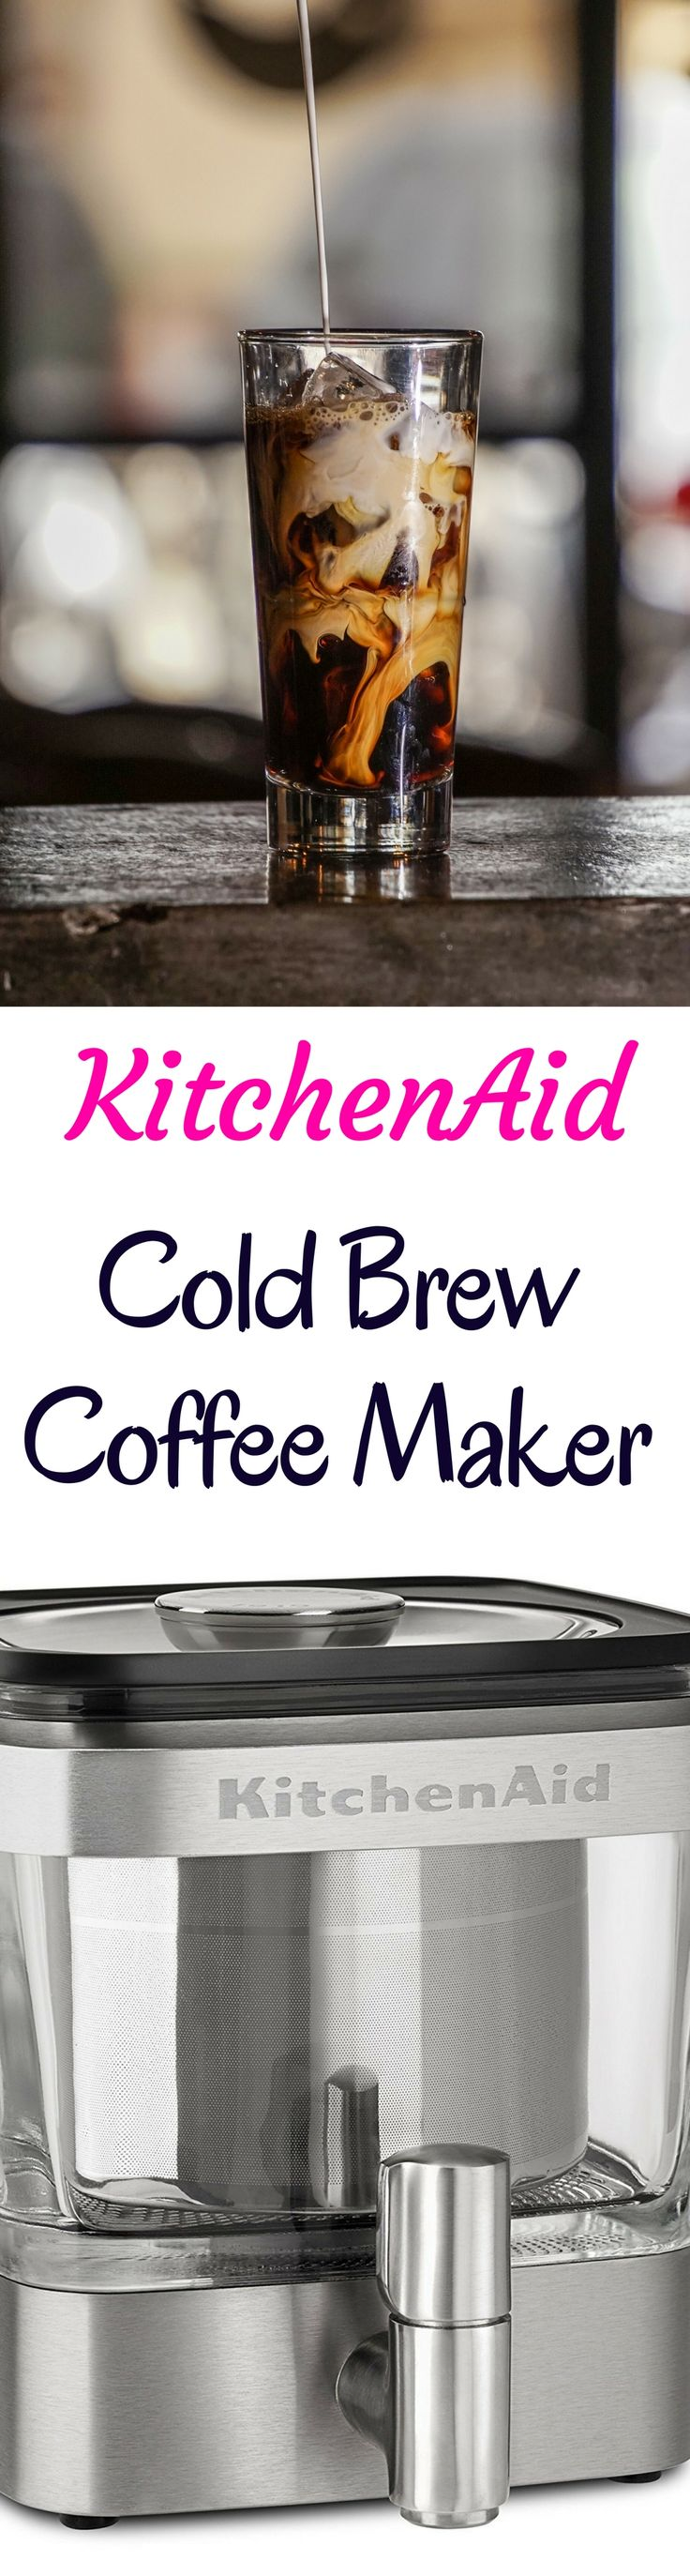 Are you tired of having to spend money to go to the local coffee shop just for a cold coffee because you don't know how to make it at home? If so, then you may want to look into a cold brew coffee maker, because they make the entire routine a whole lot easier. With a cold brew coffee maker in your home, you can enjoy cold coffee whenever you like, without having to get in your car and drive to that coffee shop.